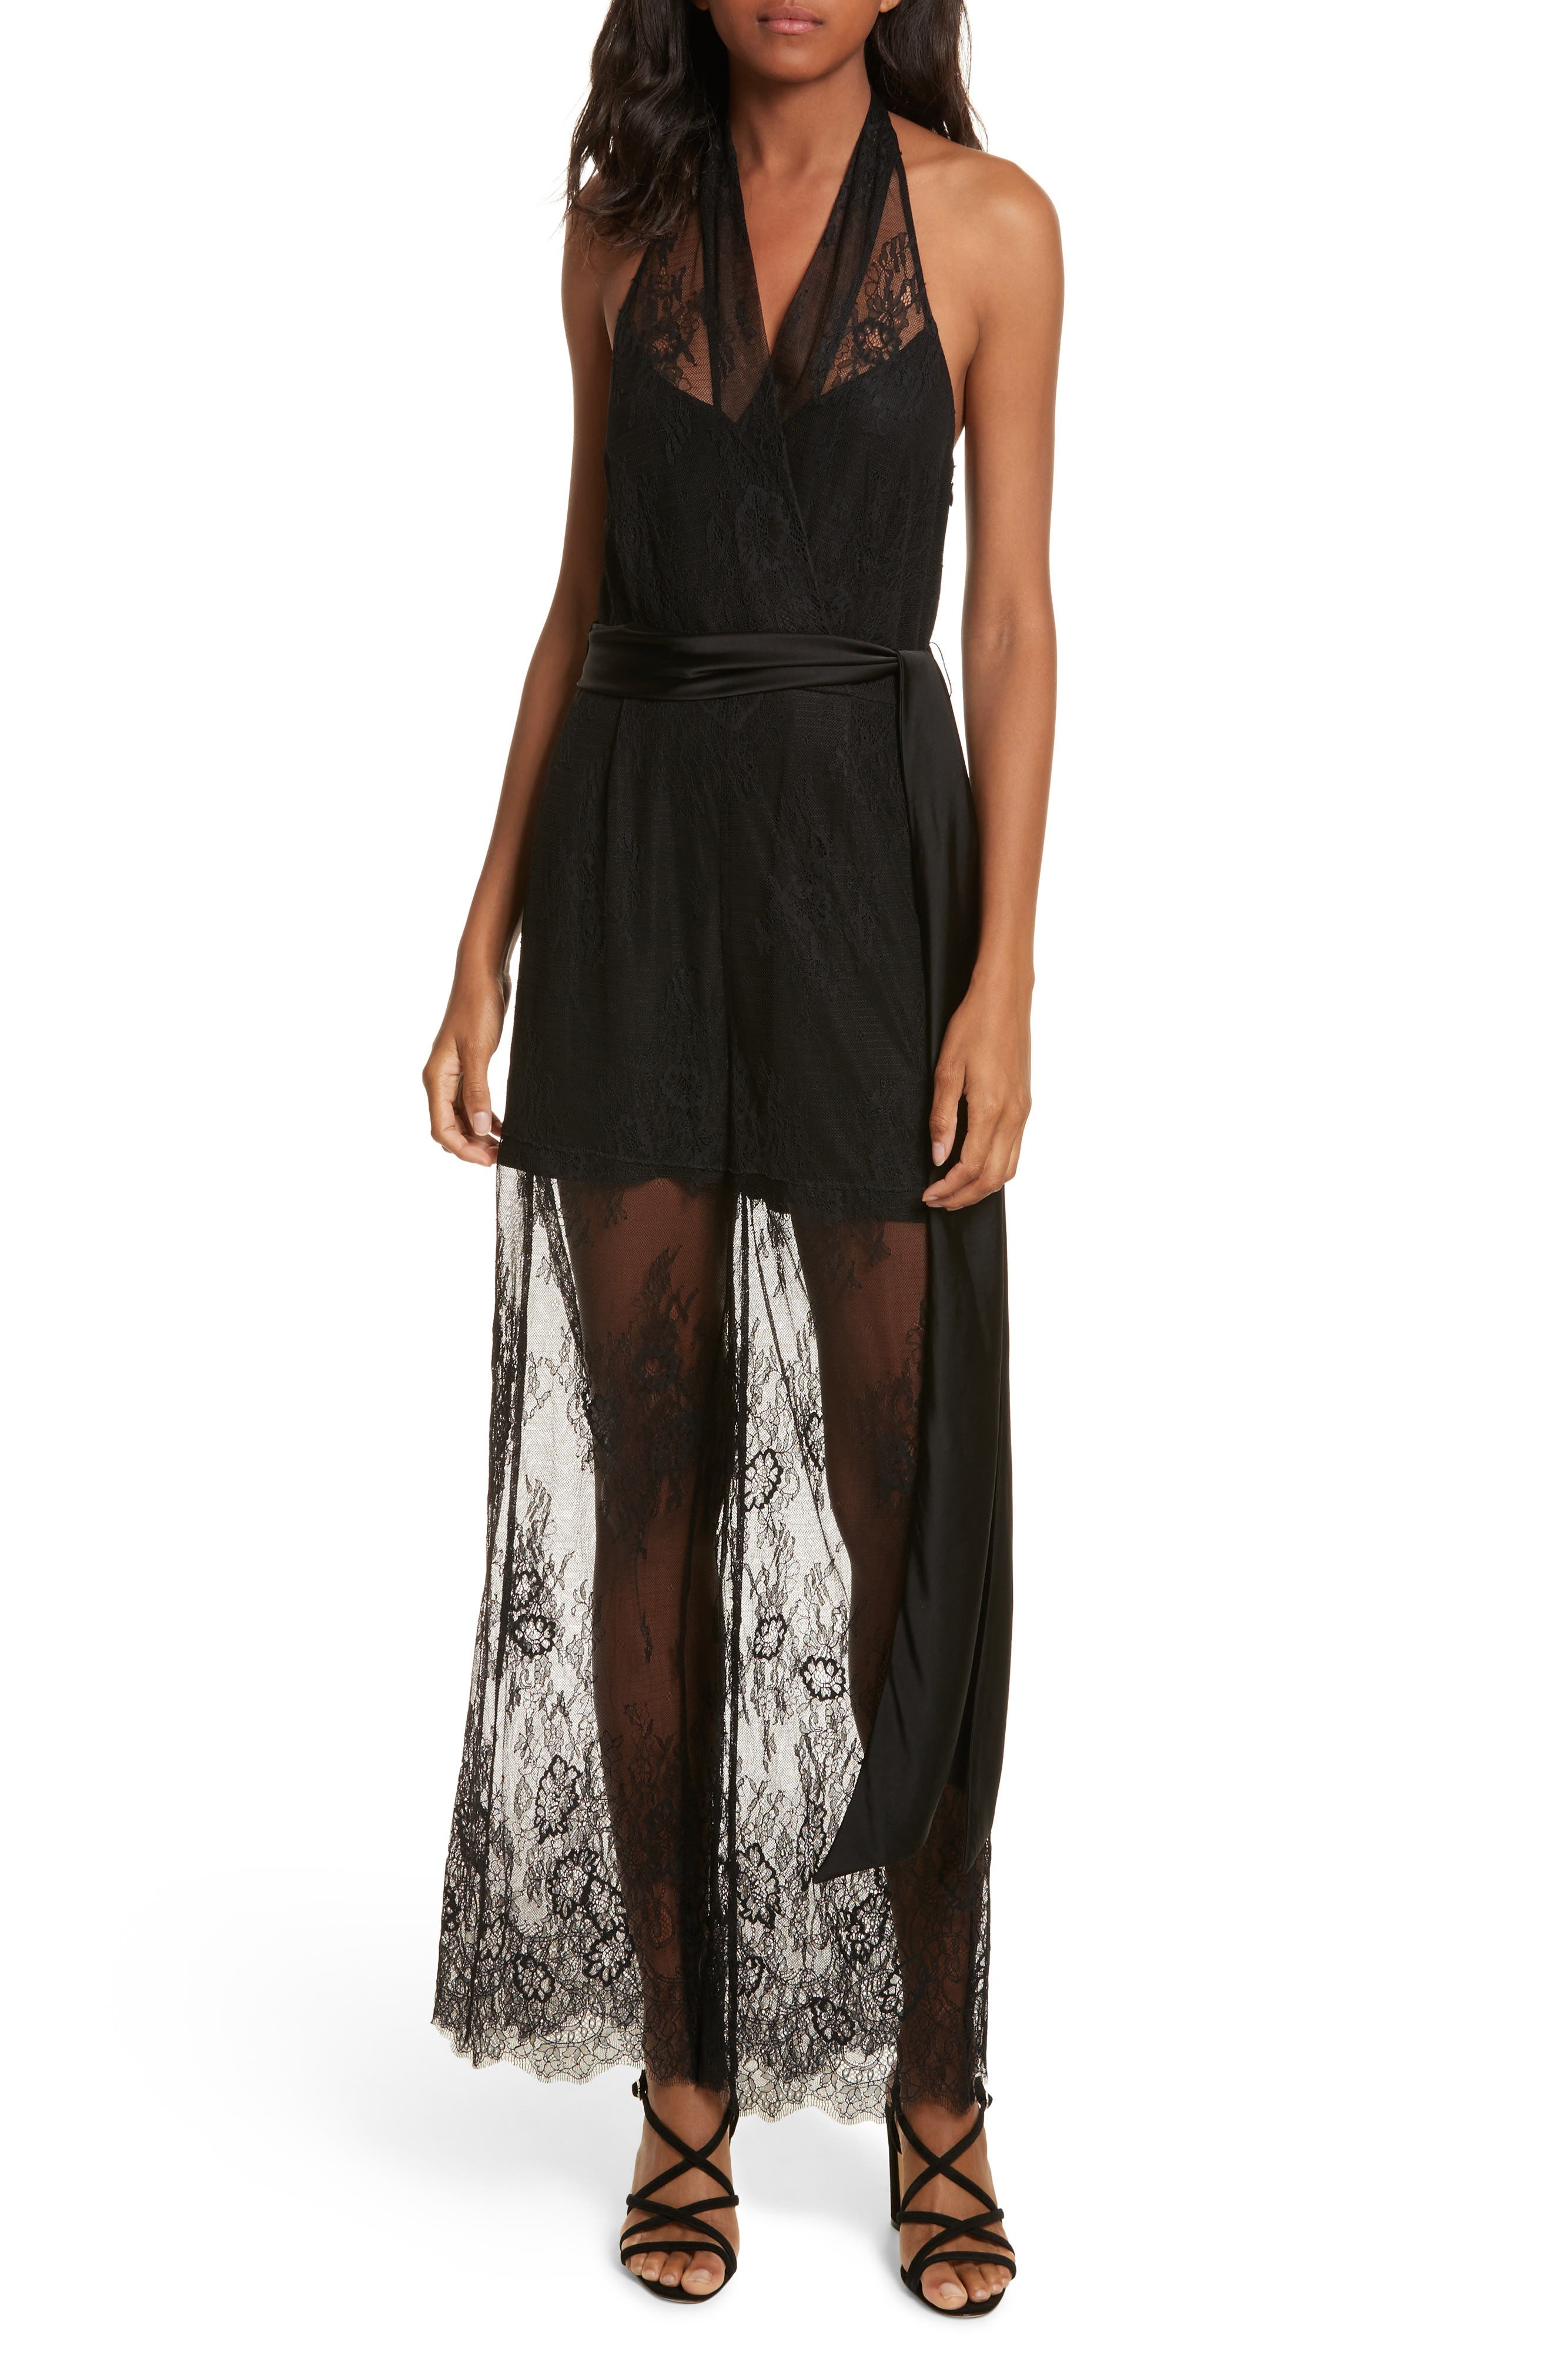 Diane von Furstenberg Halter Neck Lace Jumpsuit,                             Main thumbnail 1, color,                             001